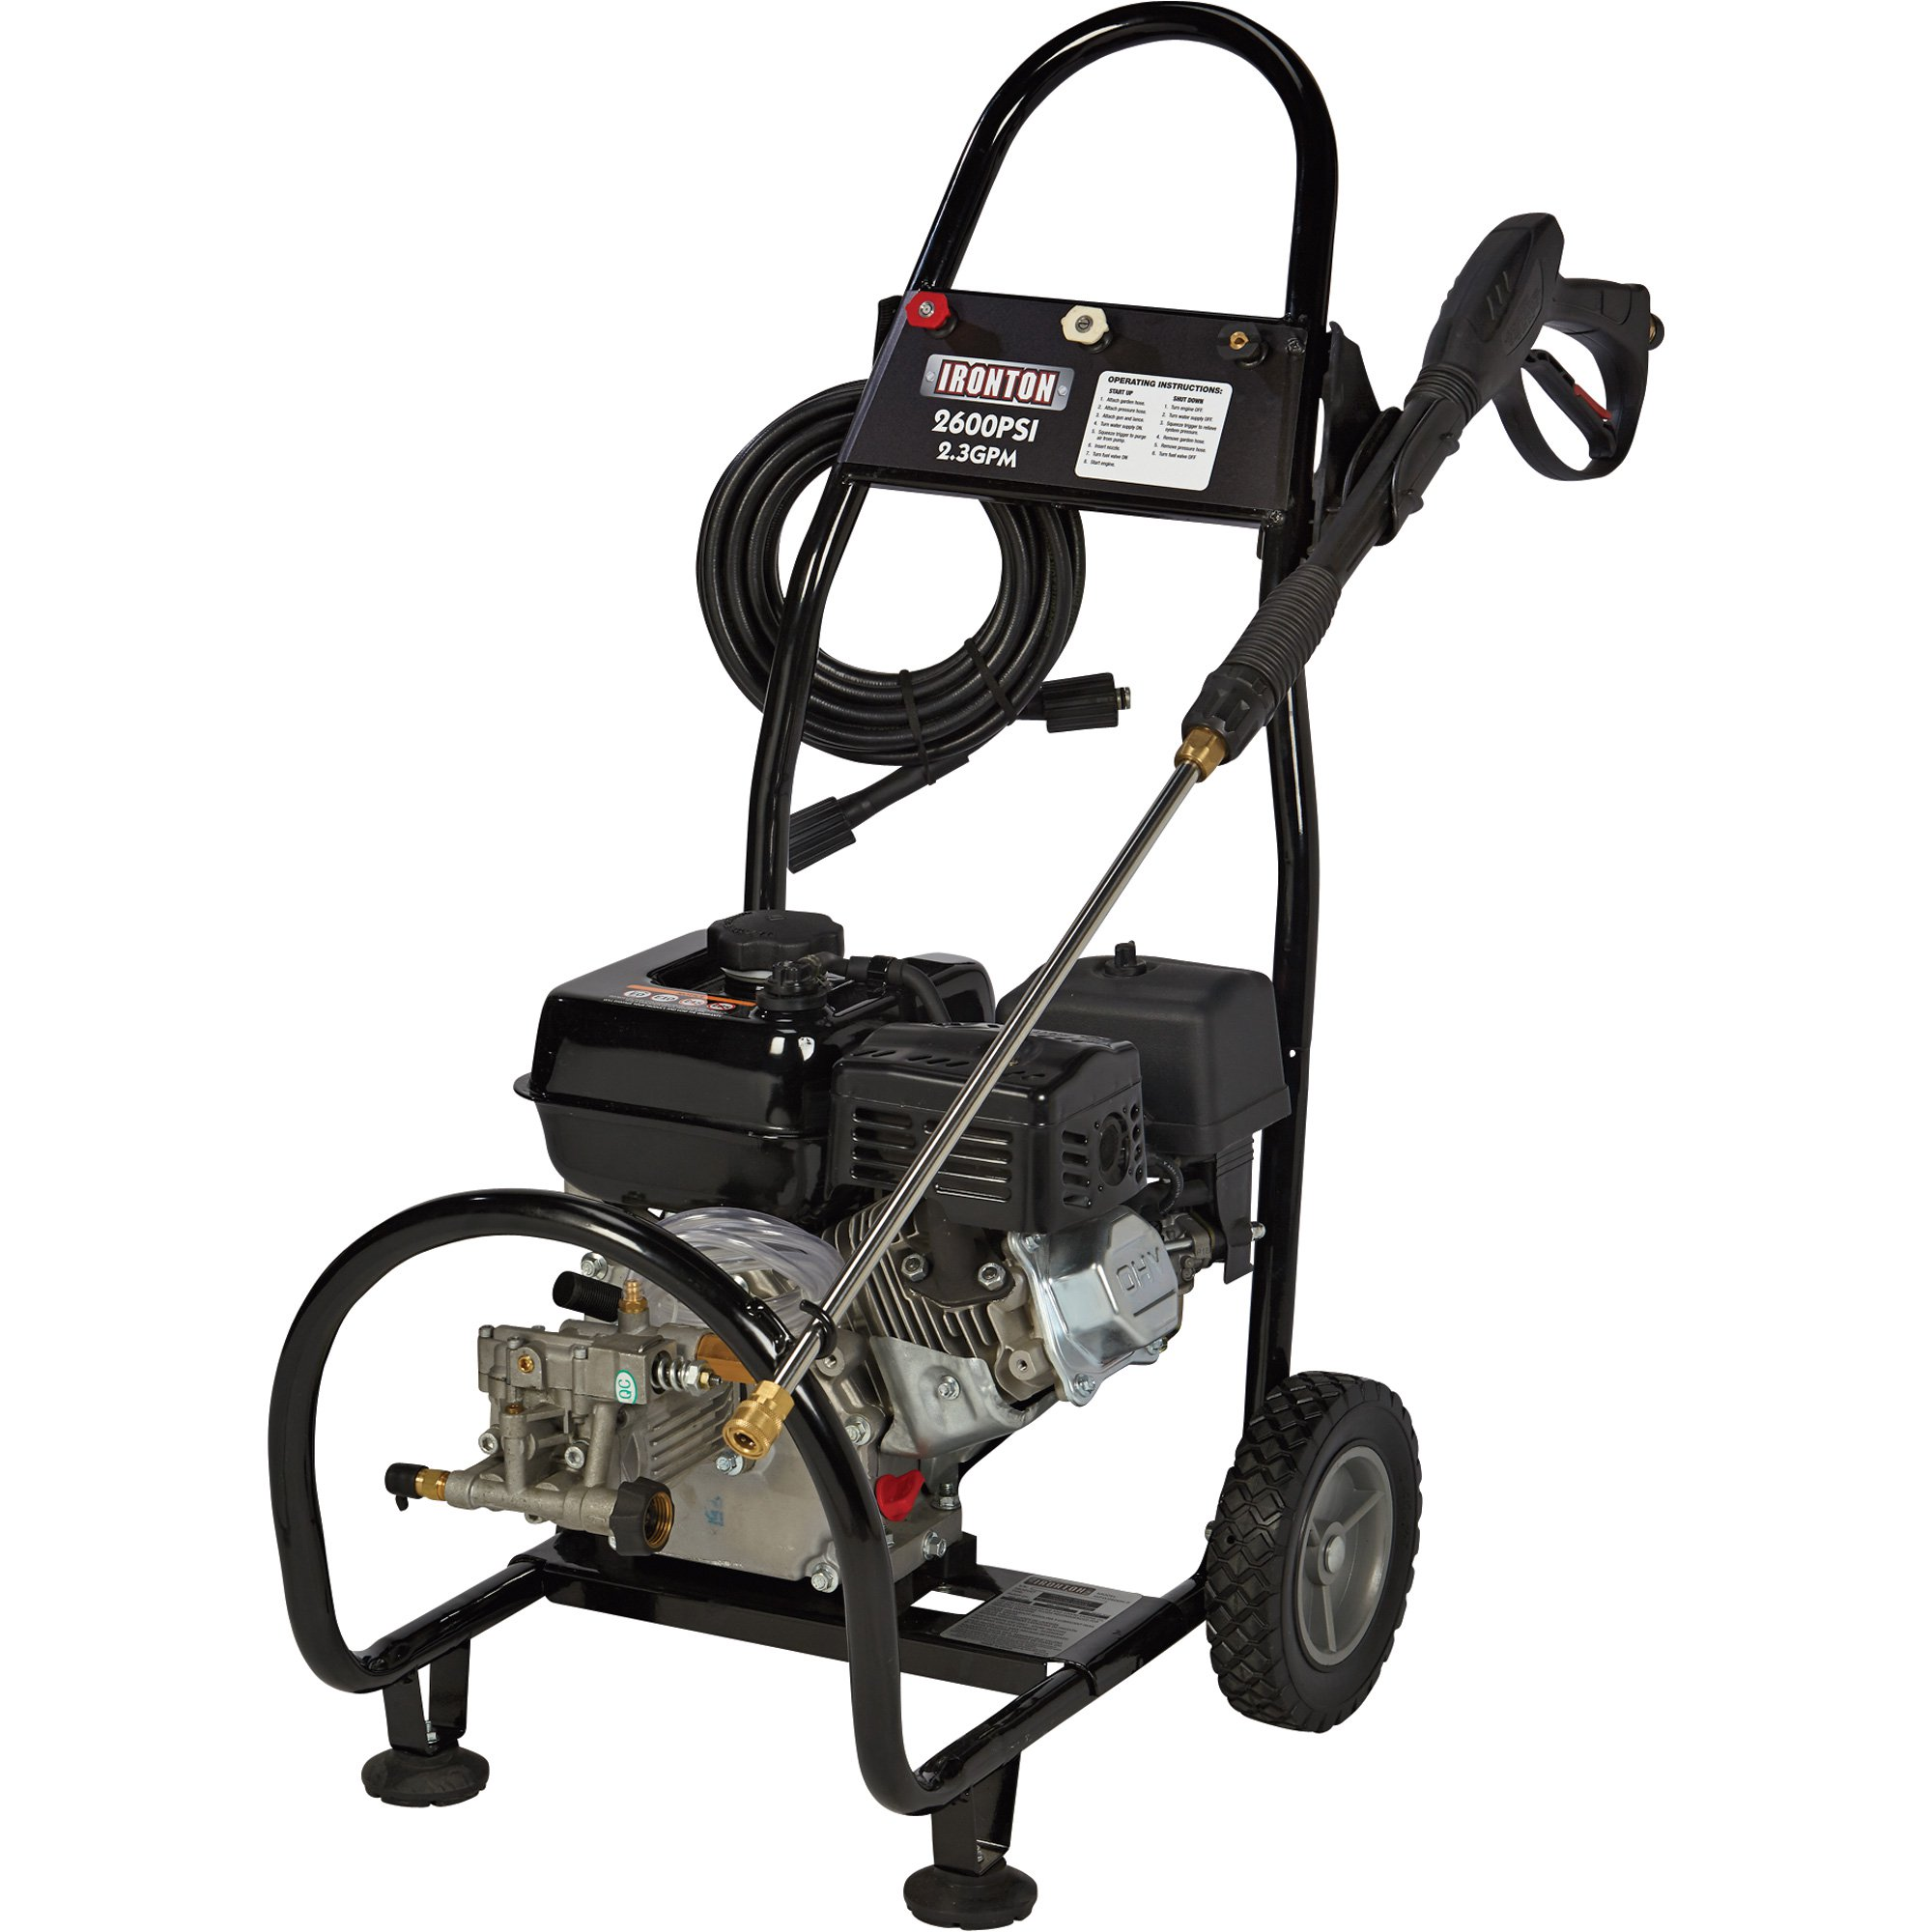 Ironton Gas Cold Water Pressure Washer - 2600 PSI 2.3 GPM - 87034 - 45810